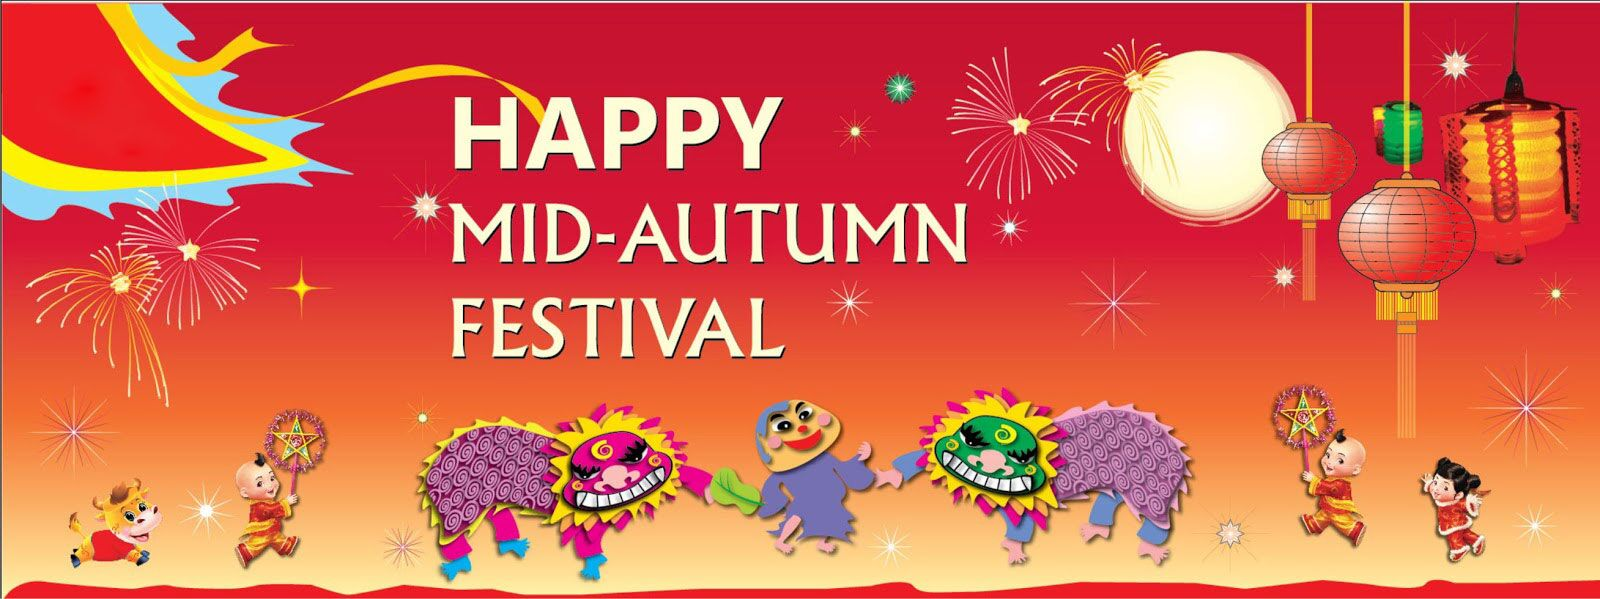 Intech wish you all a VERY HAPPY Mid-Autumn Festival!